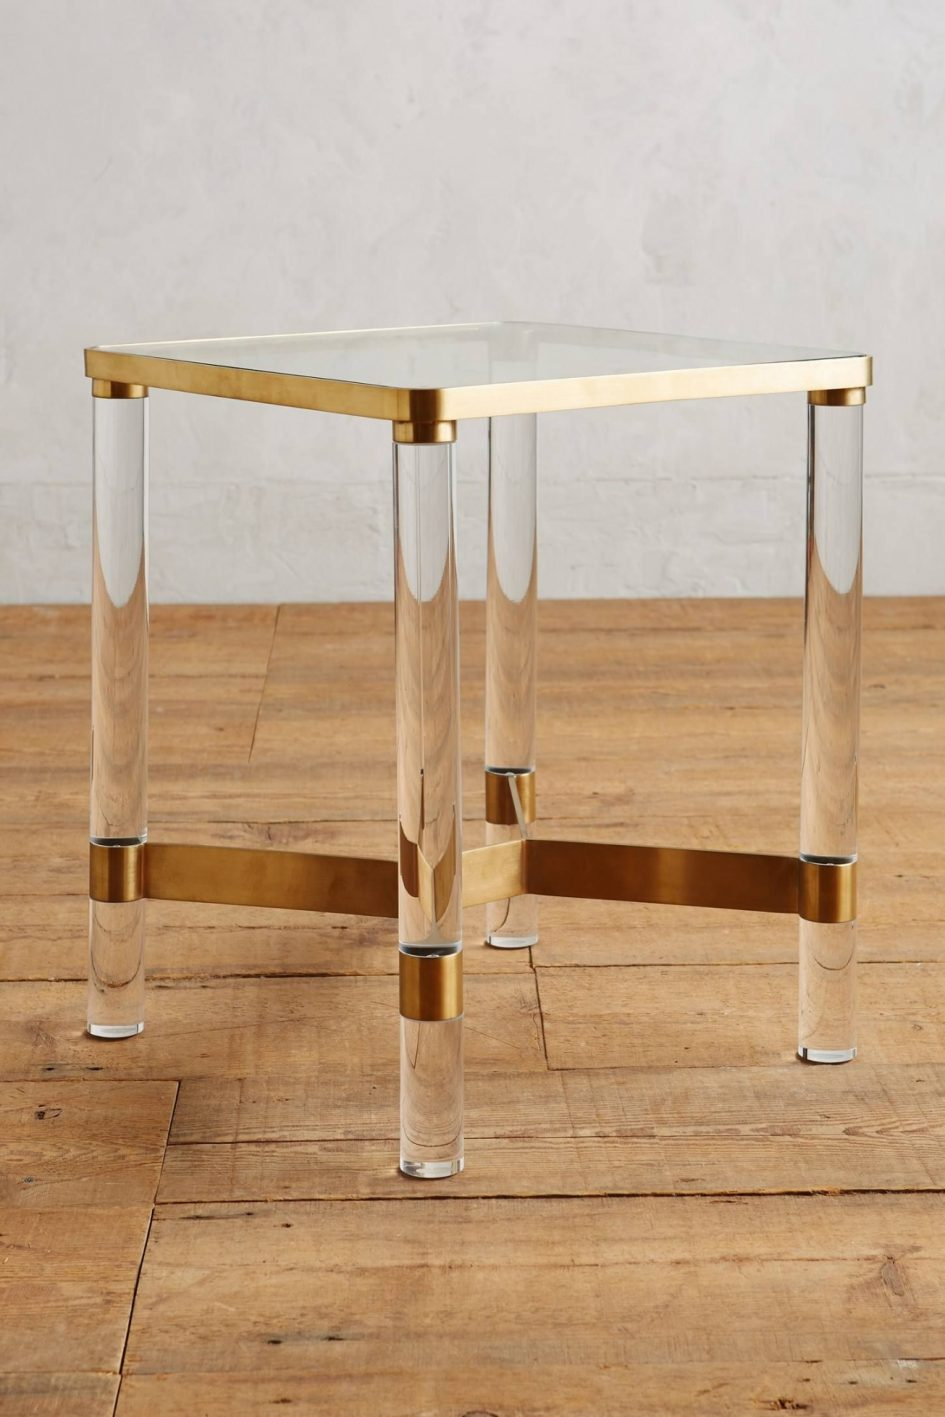 tables lucite coffee table ikea drawers full folding awesome legs bar height the daily small acrylic side for living room shabby chic white glass rustic bedside ott perspex accent